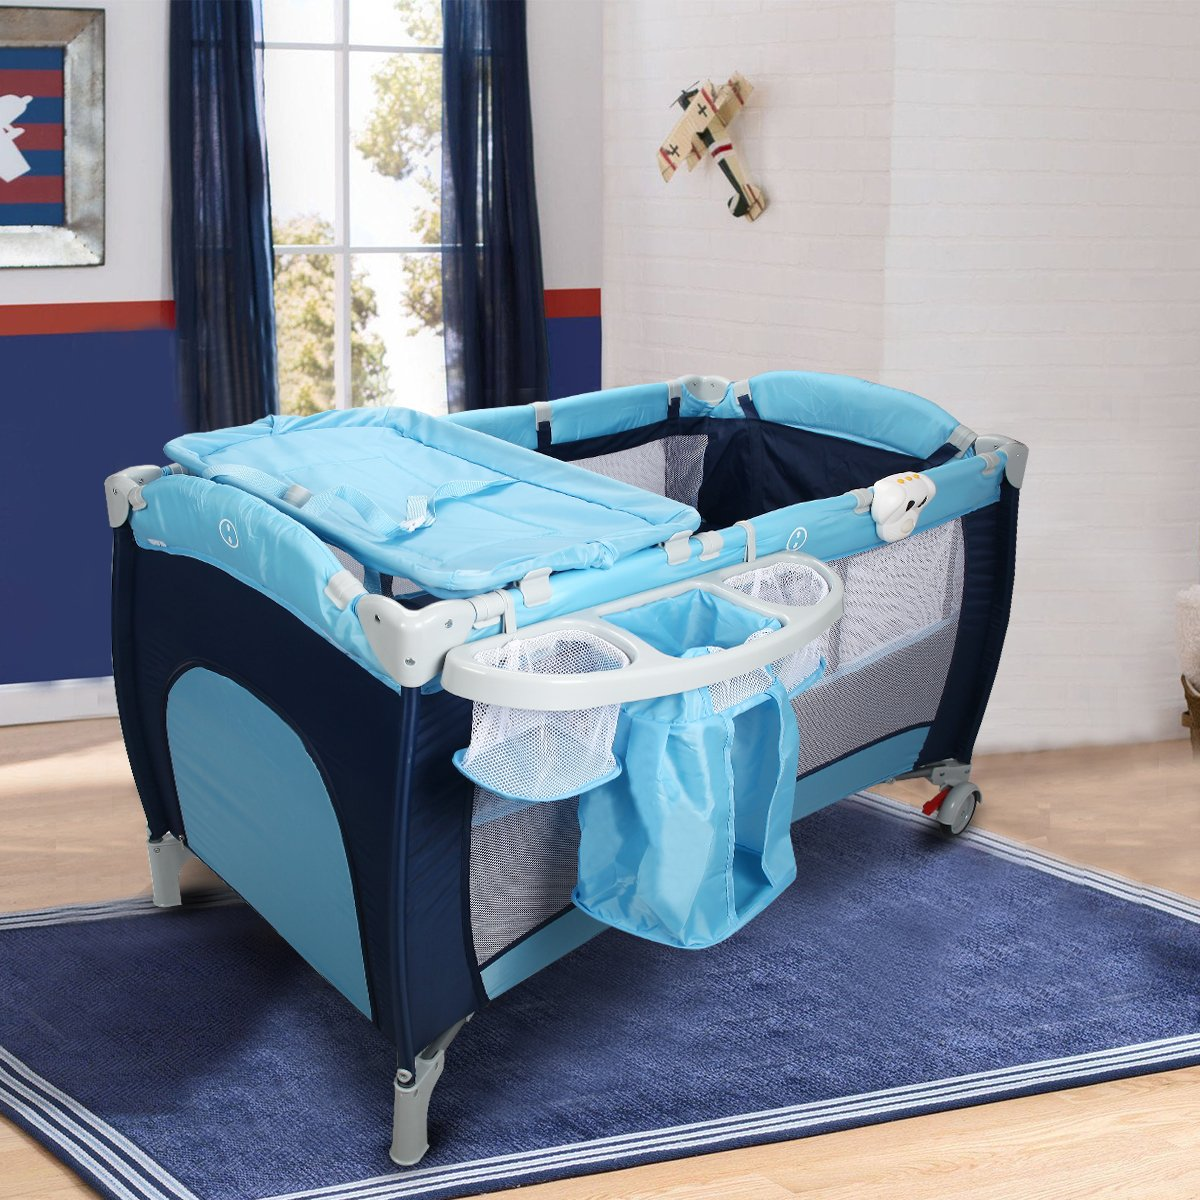 Costway Infant Travel Cot Bed Baby Play Pen Child Bassinet Playpen Entryway W/ Bag & Net Christmas Gifts (Blue)